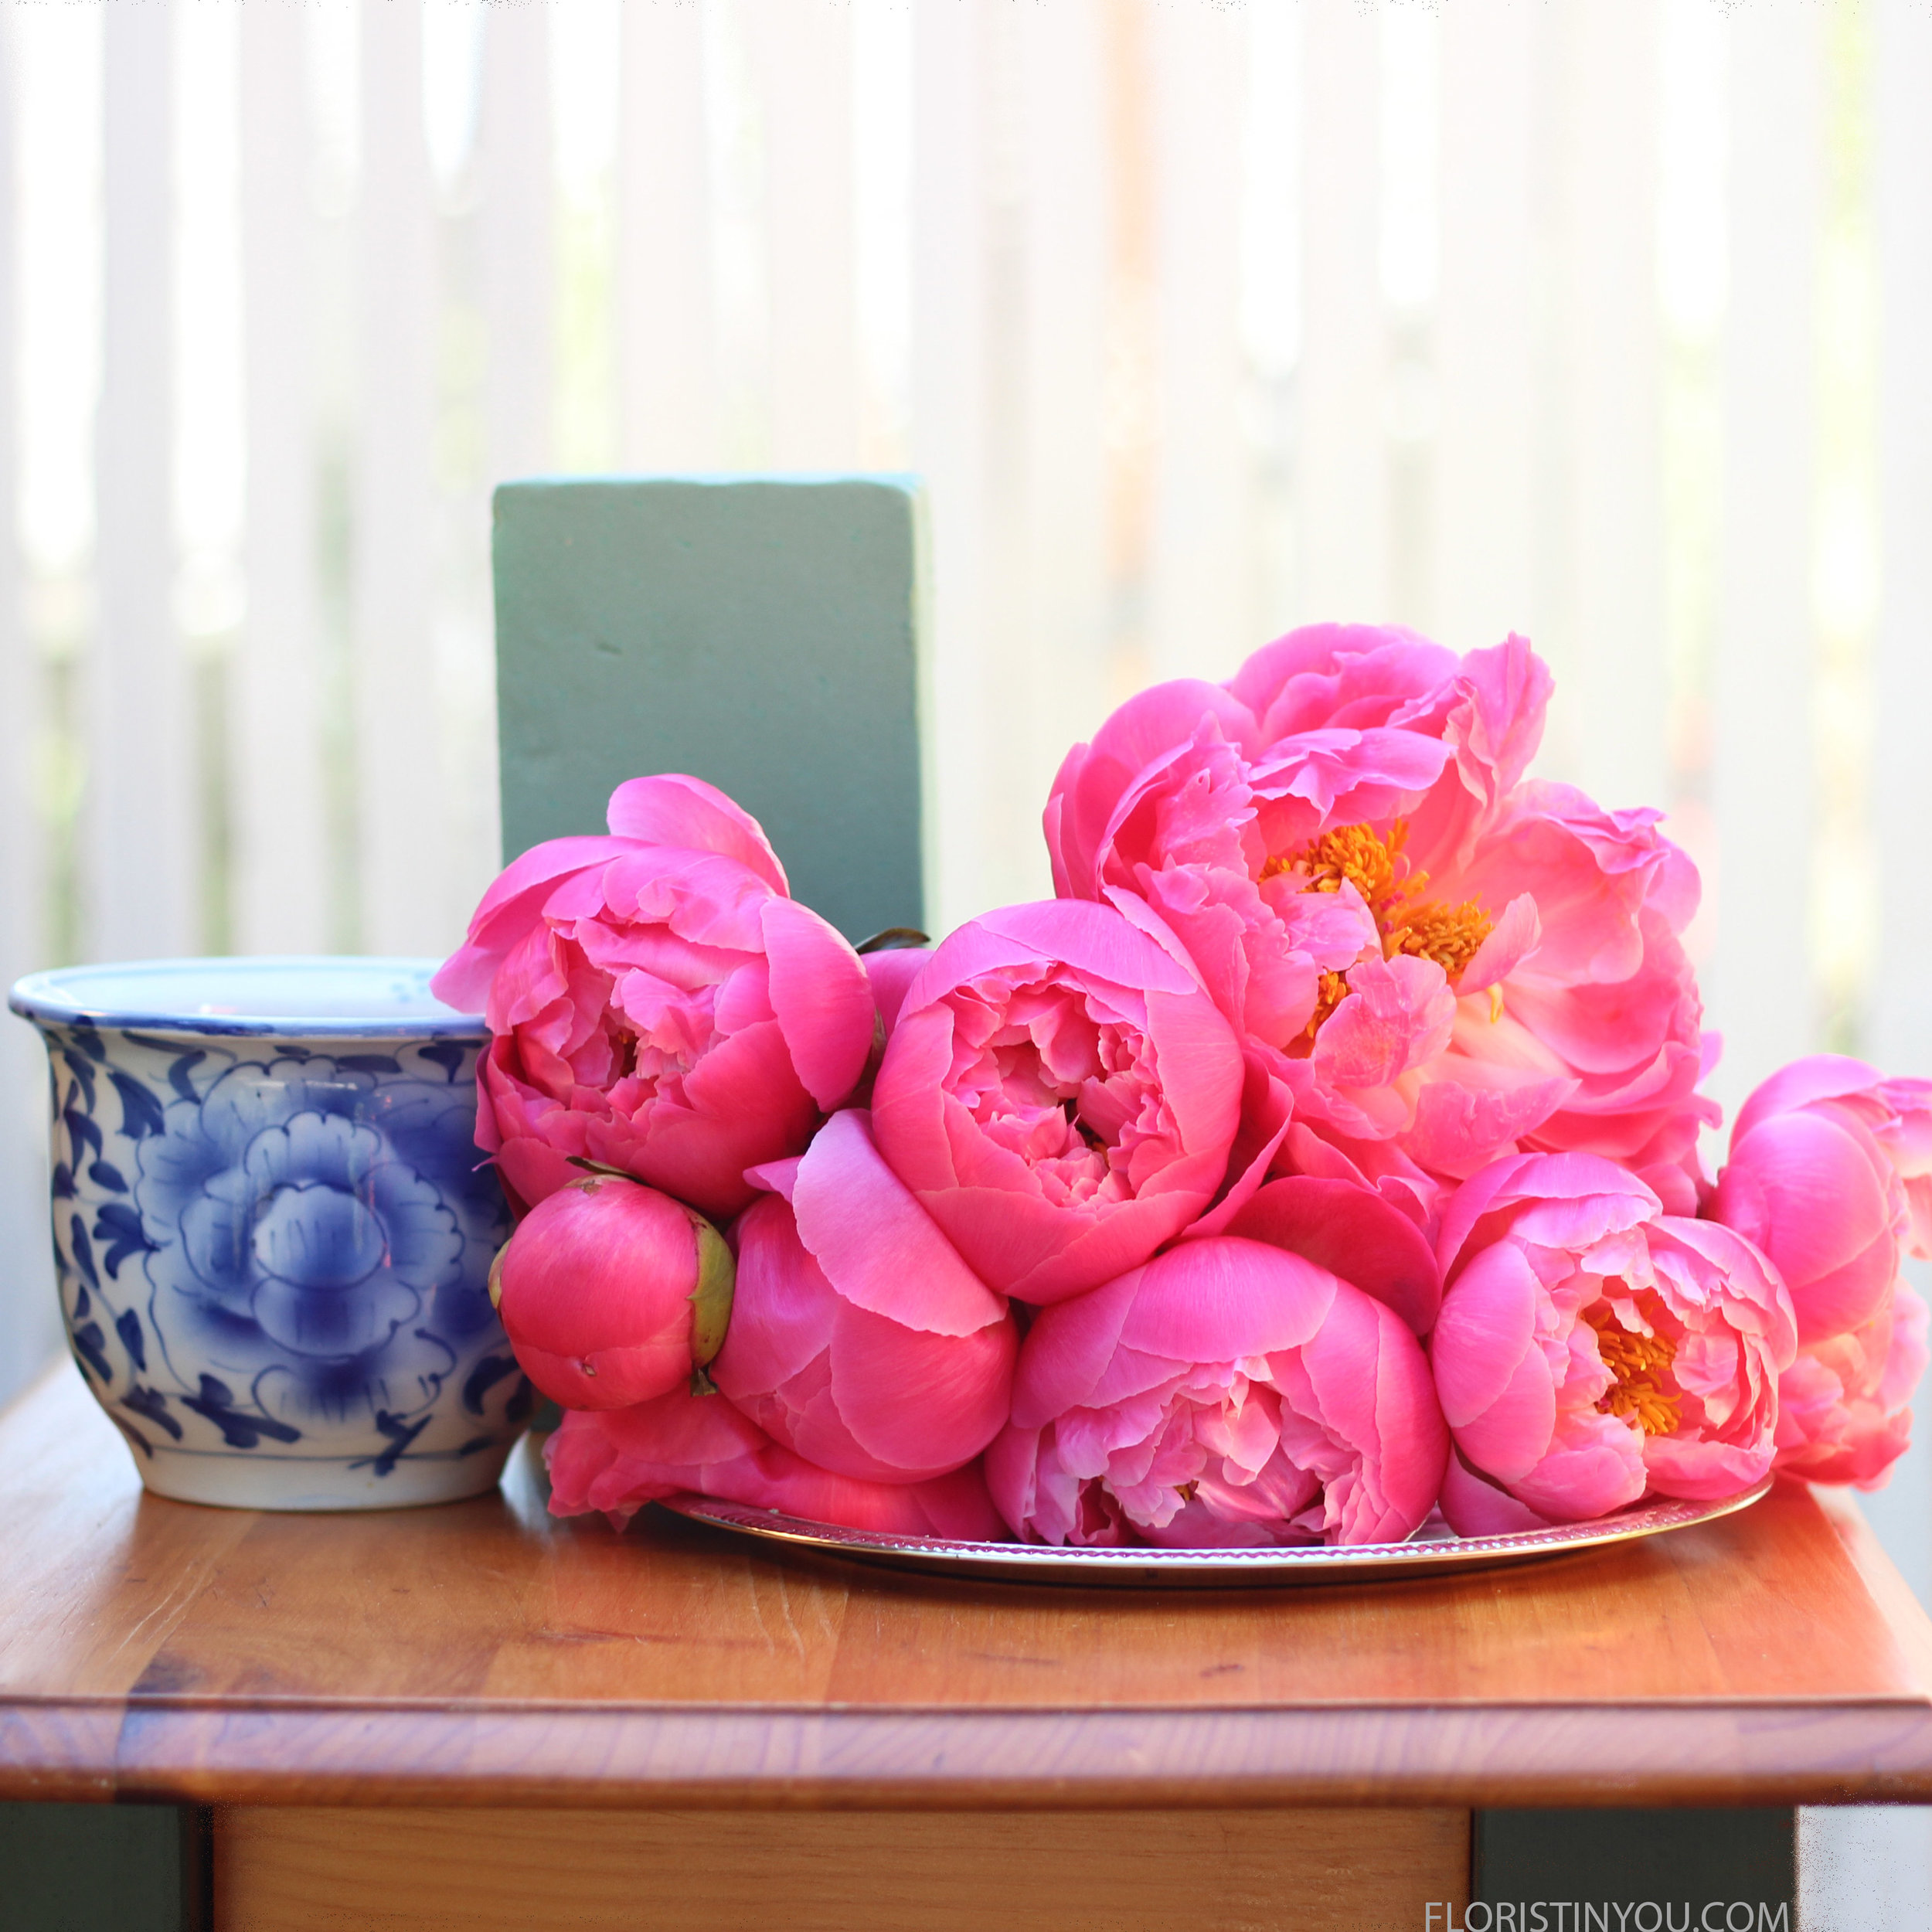 Here are your peonies and supplies.